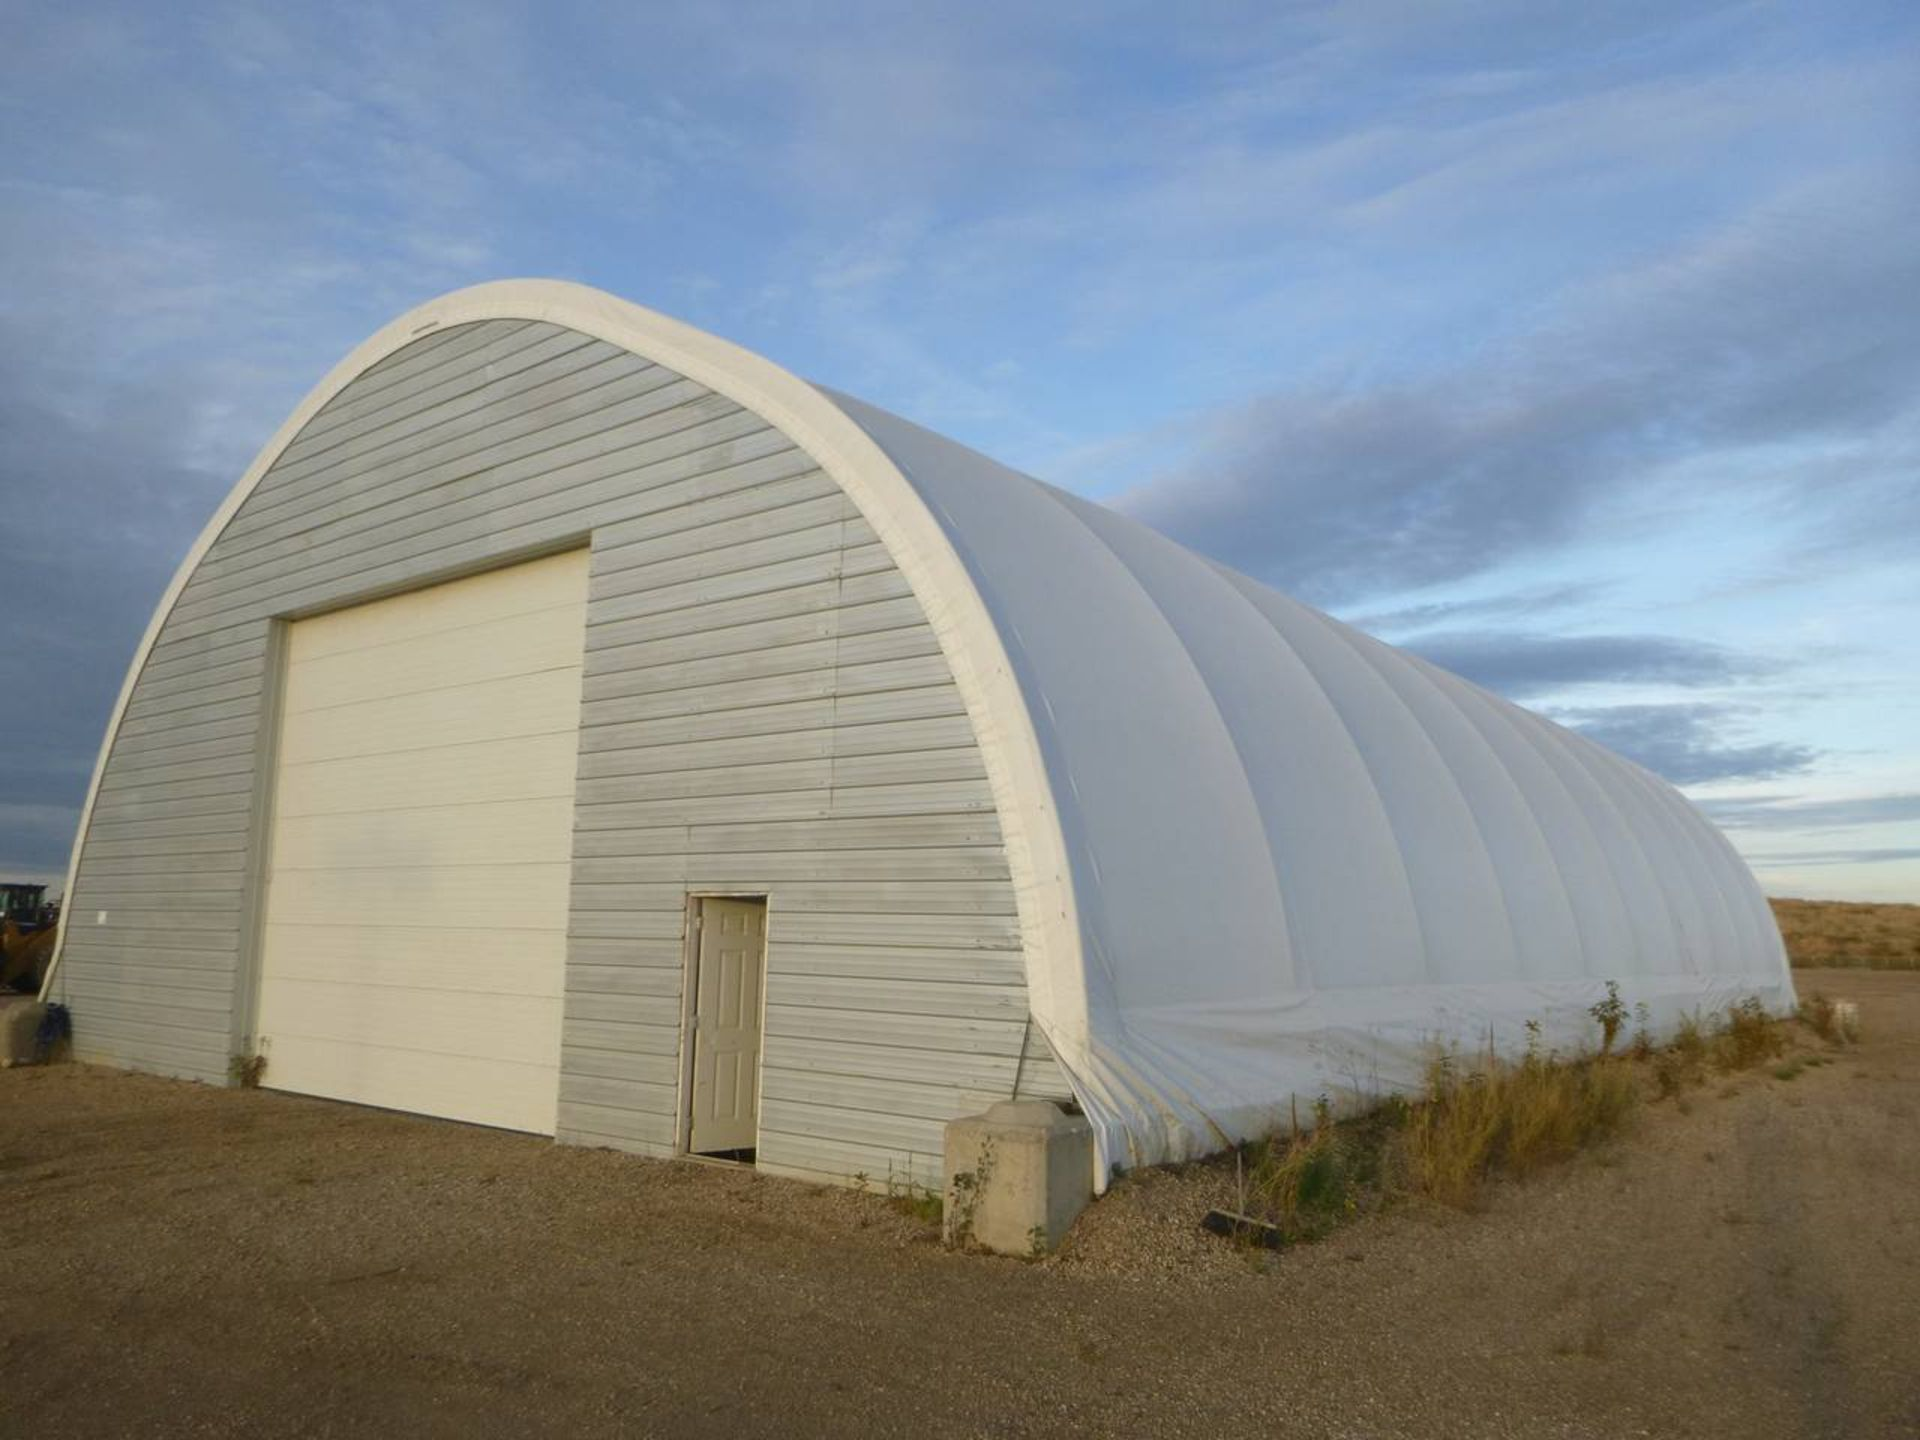 Allweather Shelters Portable Storage Building, - Image 2 of 5